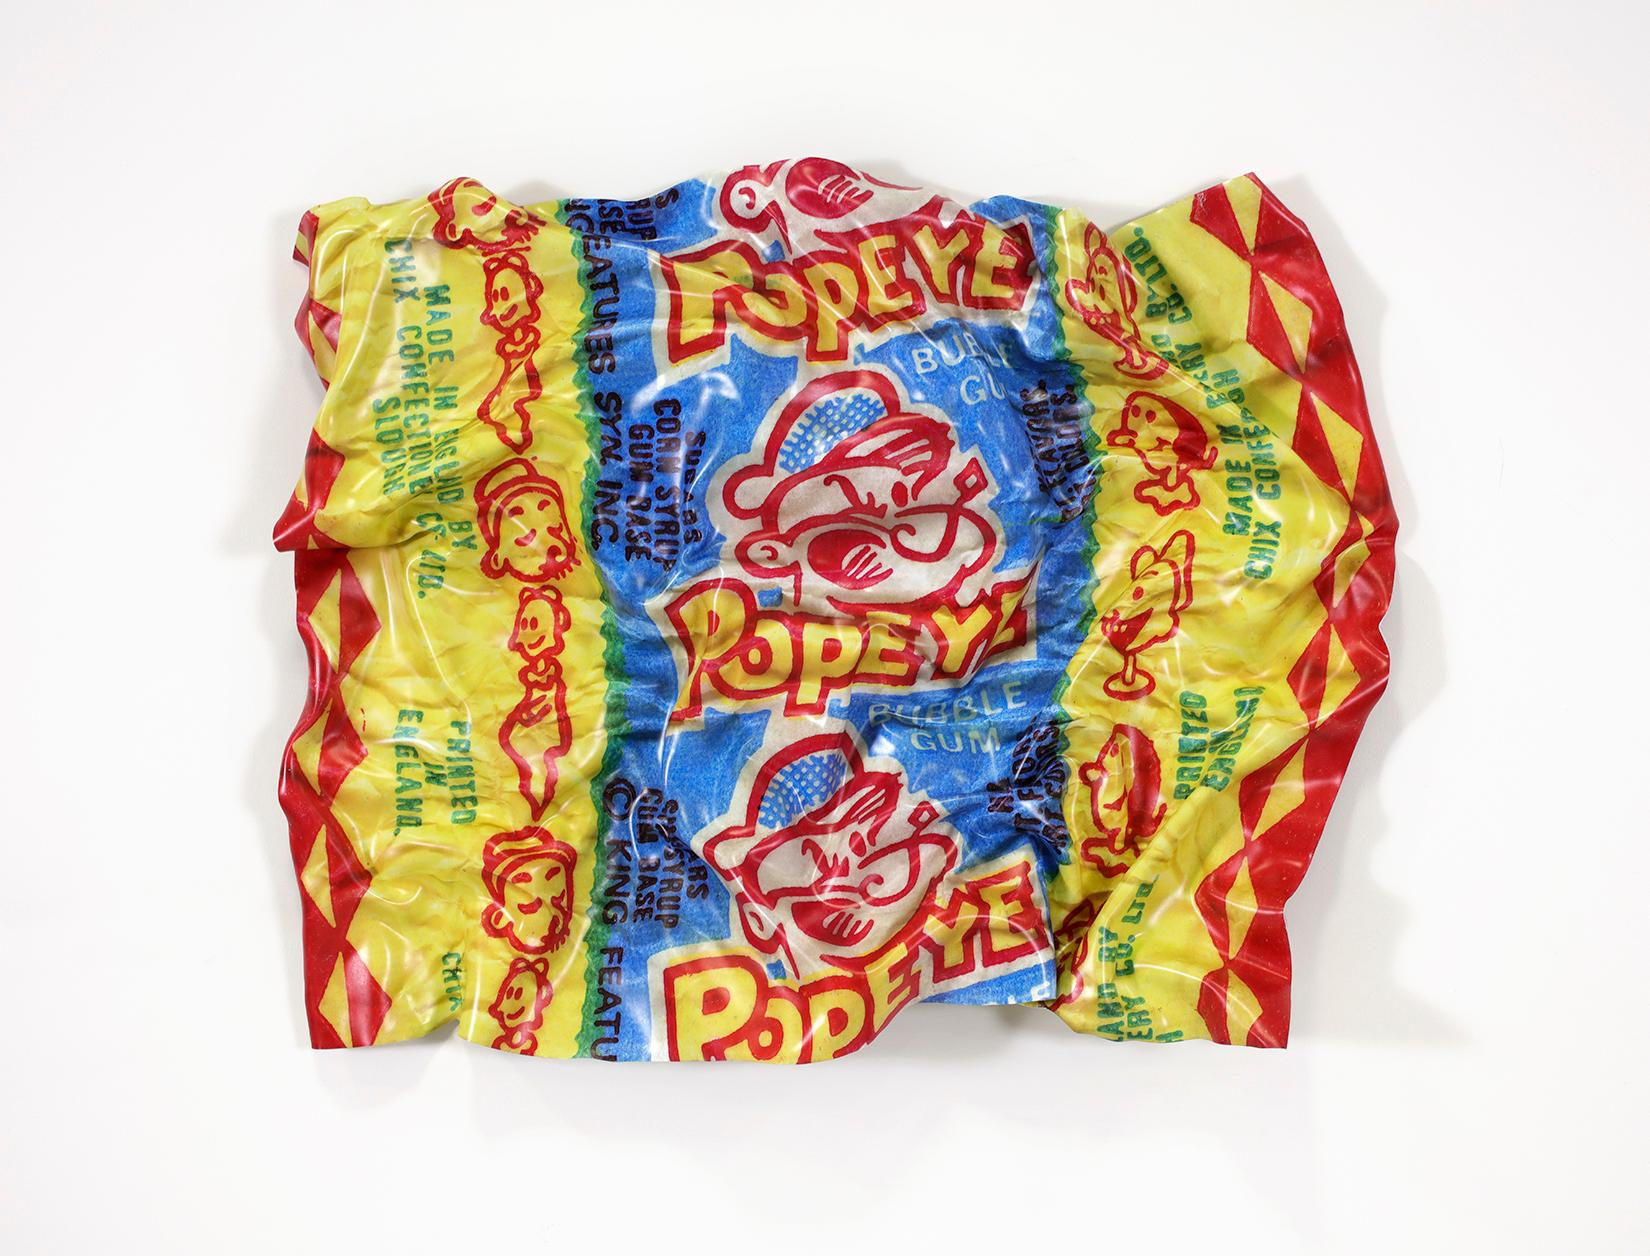 Popeye Bubble Gum Wrapper, Paul Rousso Pop-Art Hand-Sculpted Candy Polystyrene